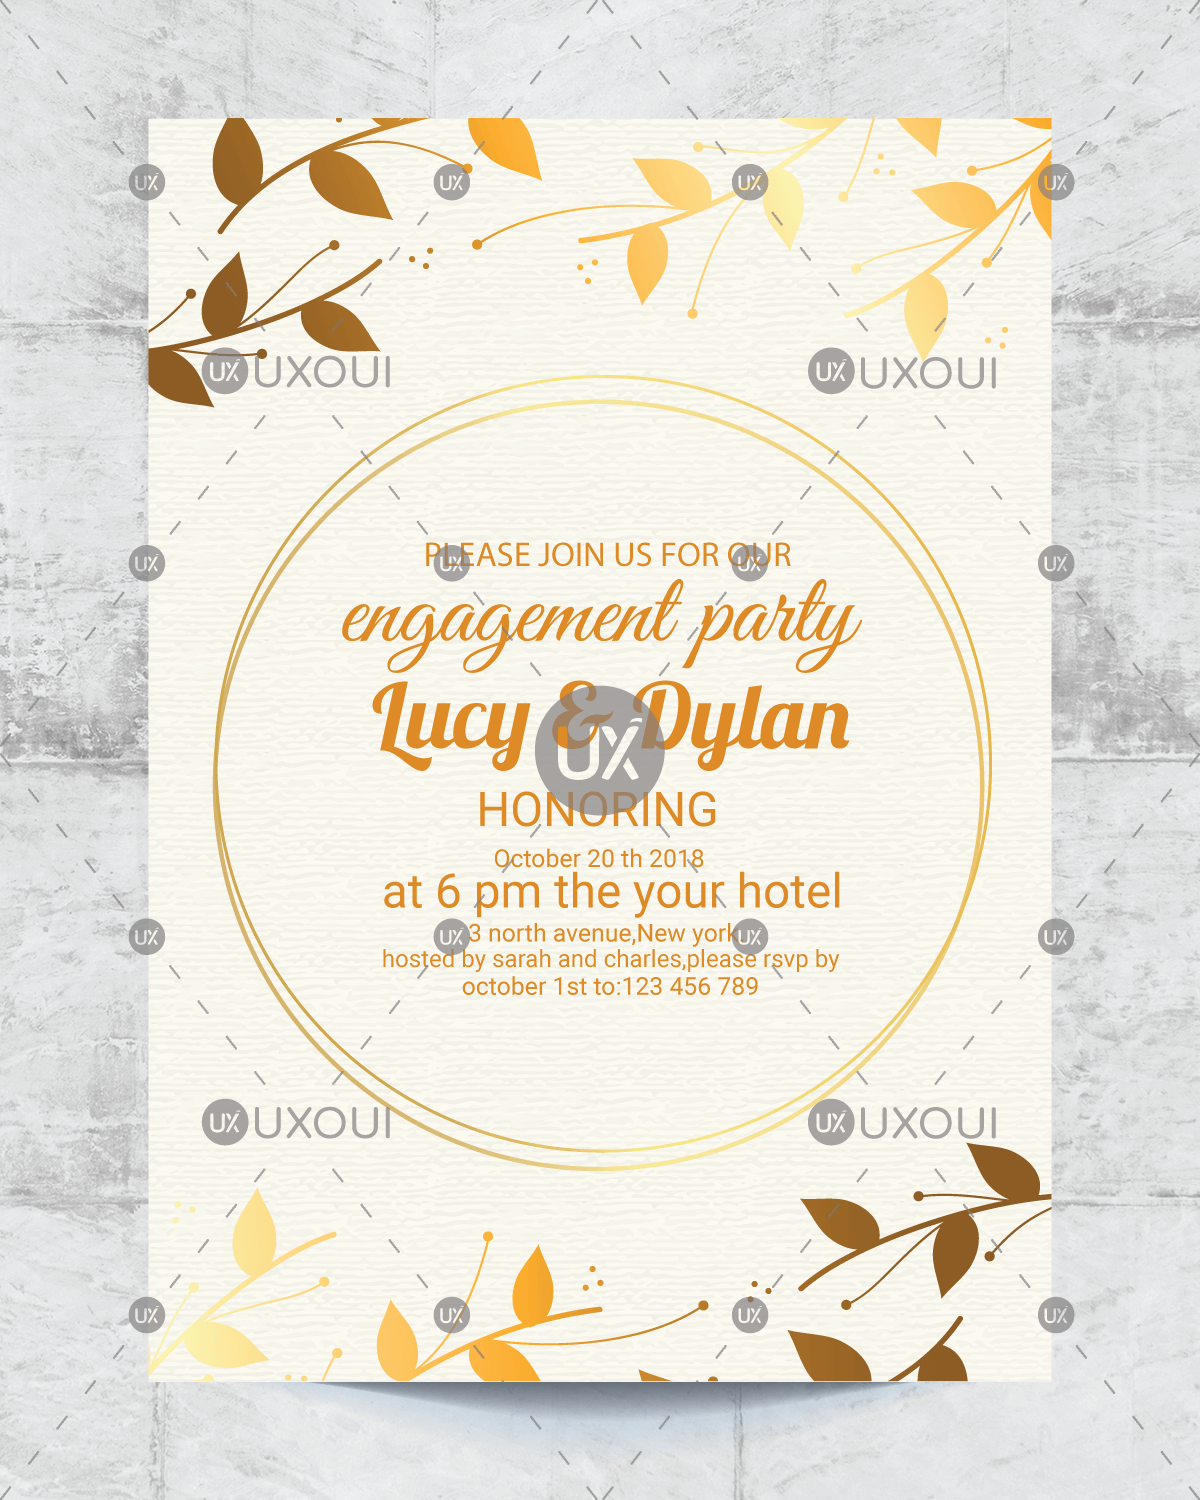 Floral Wedding Engagement Party Invitation Card Design Template Vector